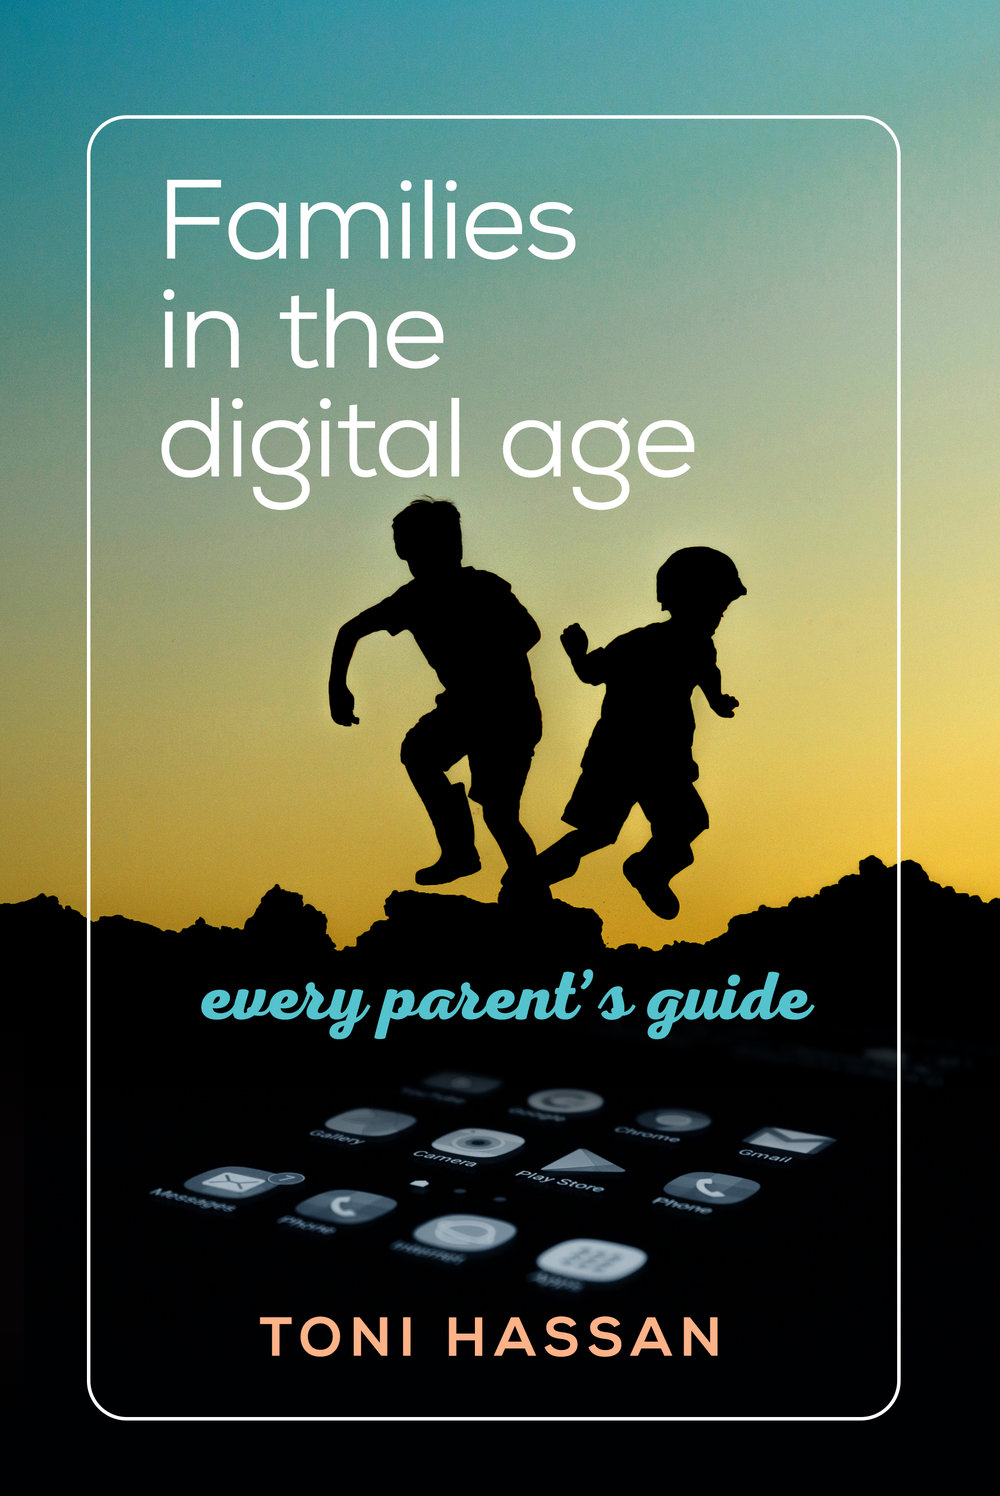 Families in the Digital Age_Cover 07.jpg